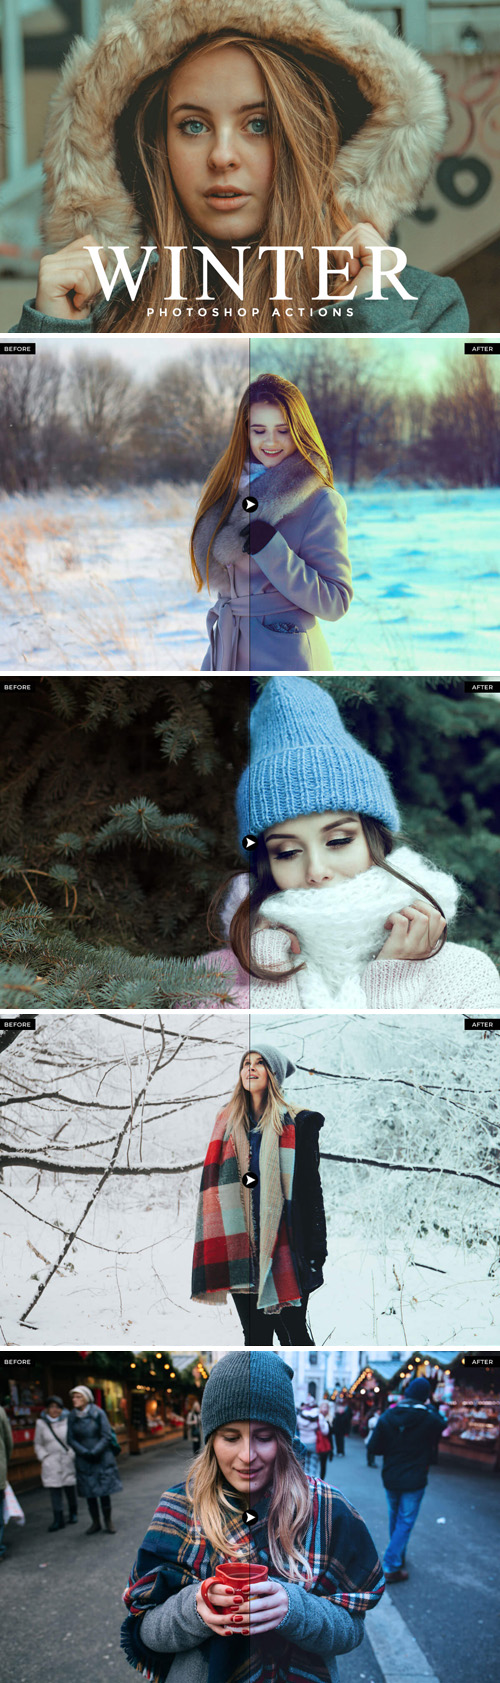 50 Winter Photoshop Actions Bundle